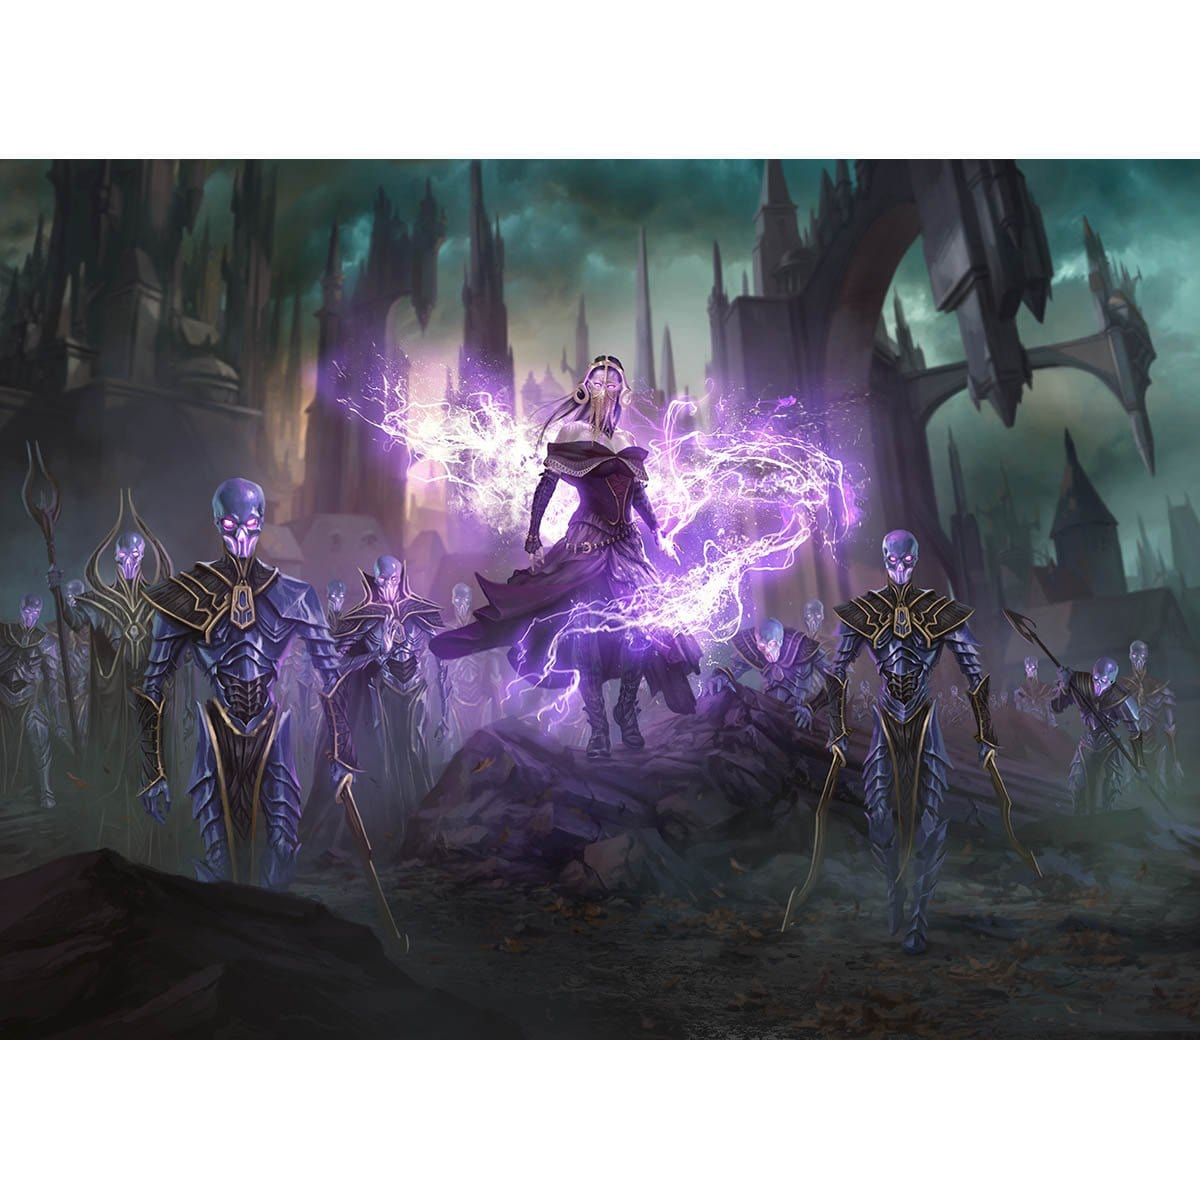 Command the Dreadhorde Print - Print - Original Magic Art - Accessories for Magic the Gathering and other card games